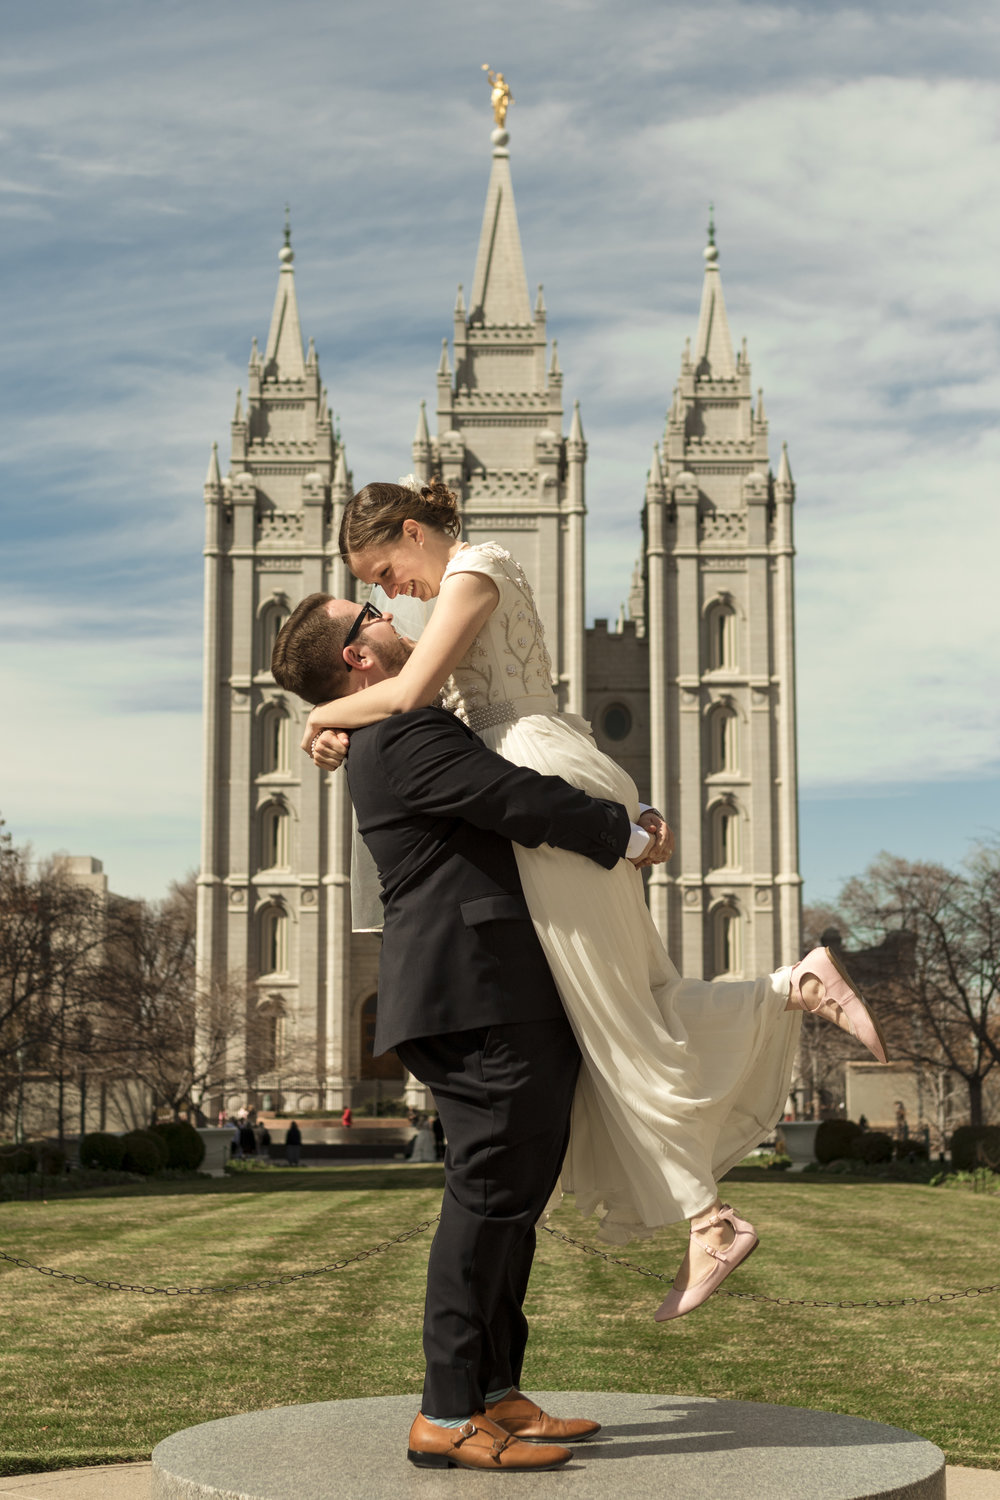 Utah Spring Wedding at the Salt Lake City Temple by Bri Bergman Photography08.JPG